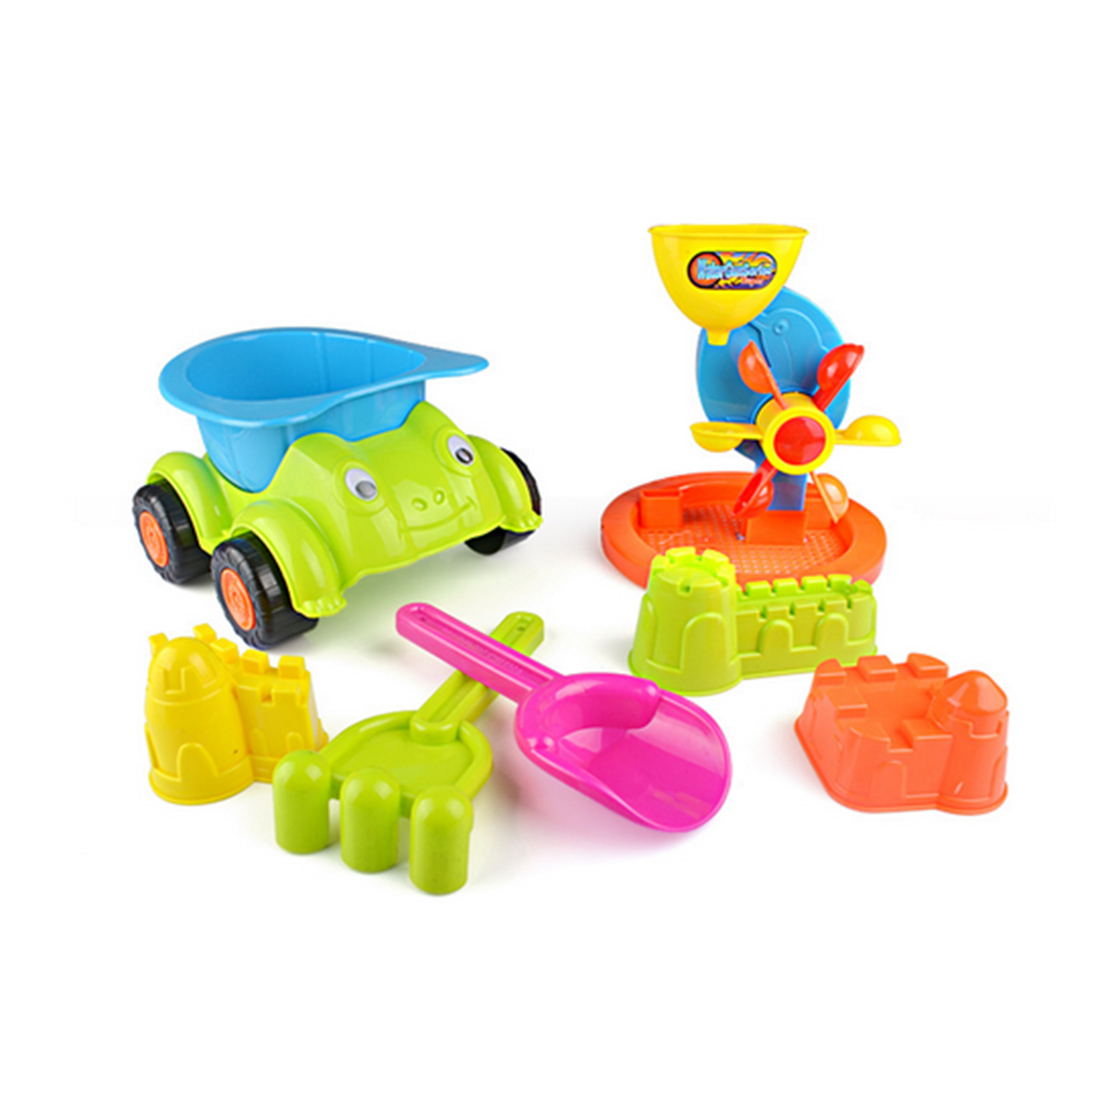 7-In-1 Large Beach Car Toy Set Plastic Outdoor Beach Play Toys For Children Gifts - Random Color